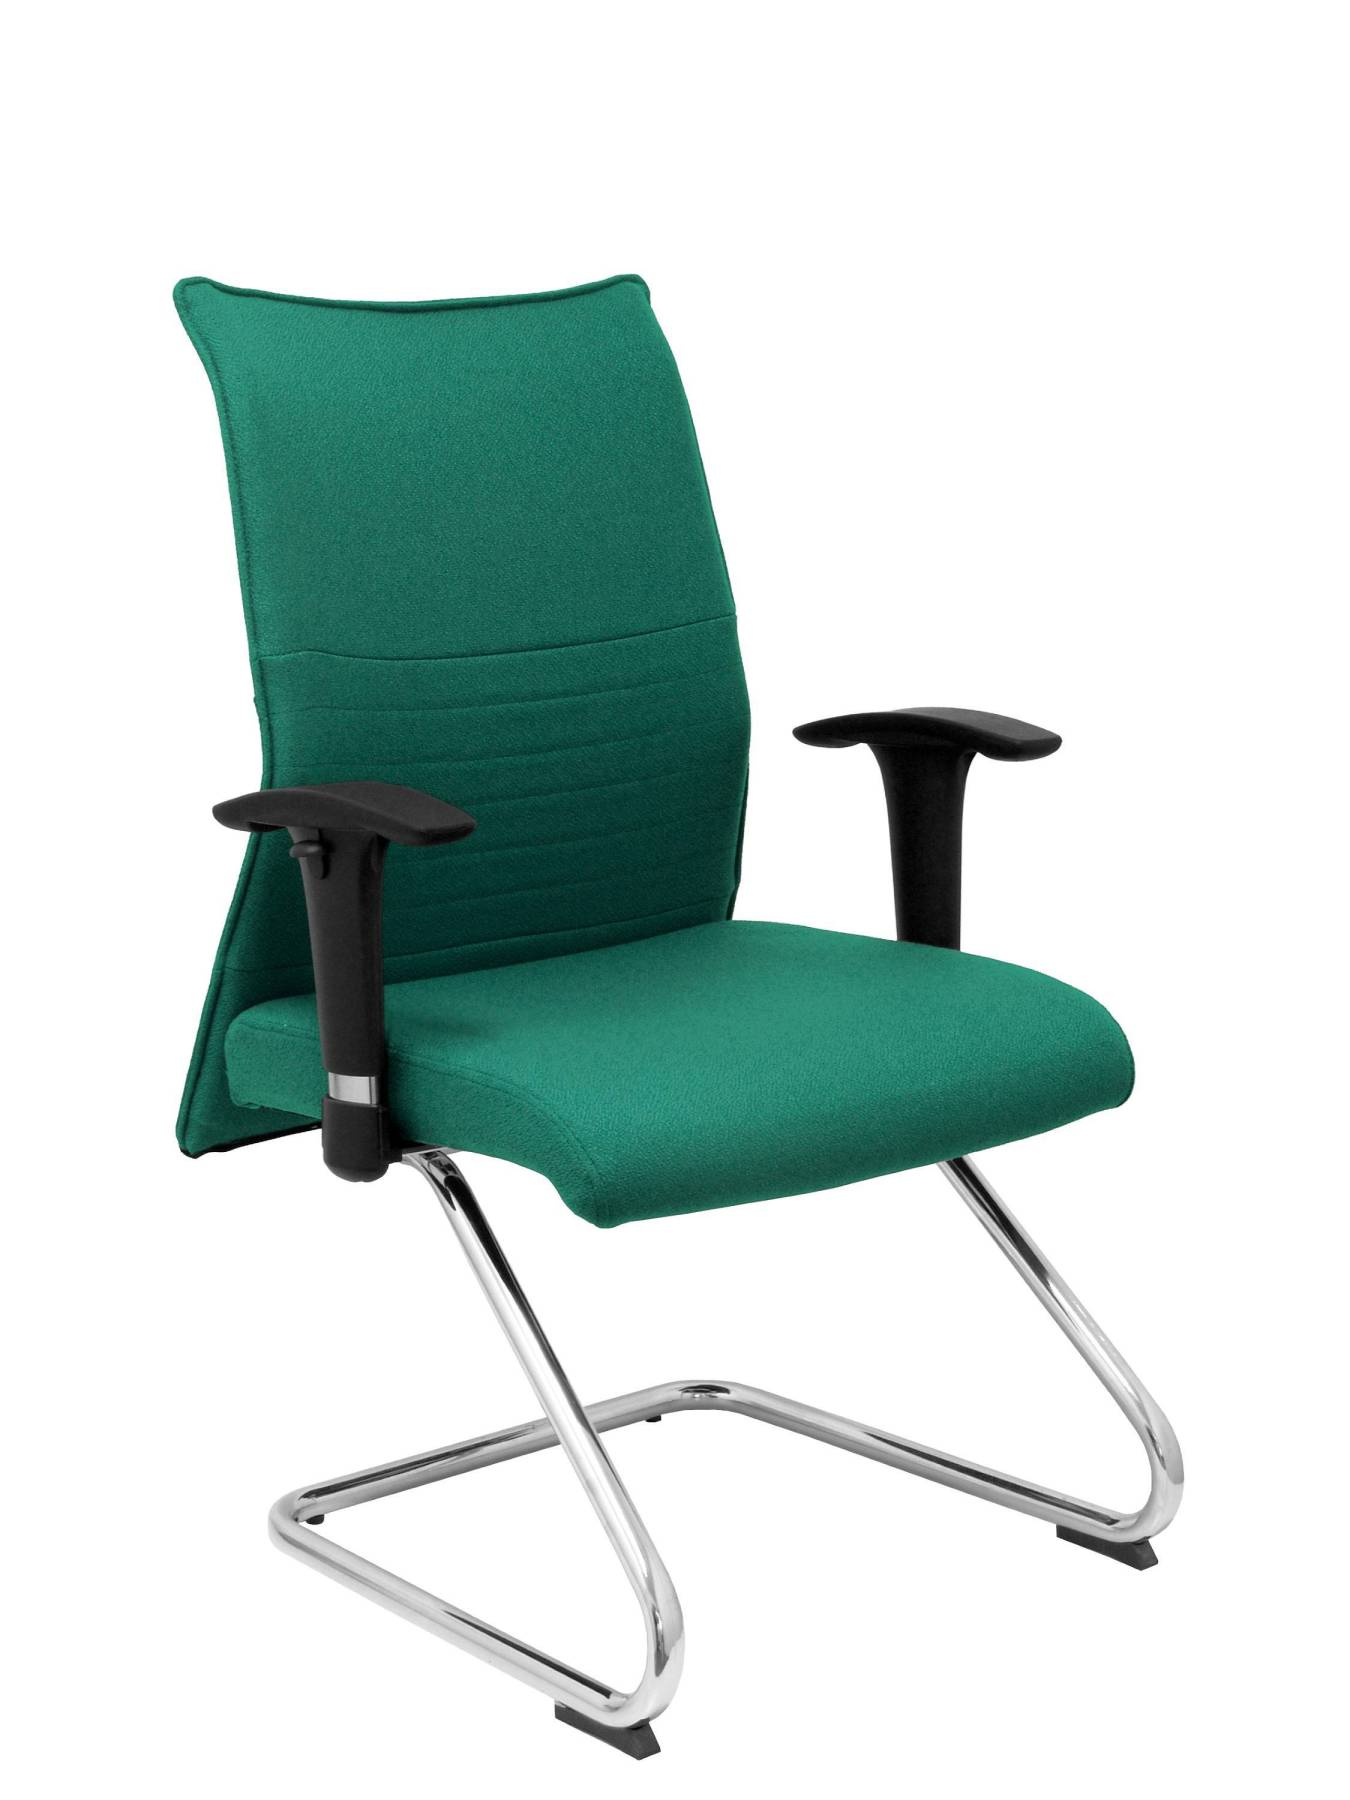 Armchair Confidante Ergonomic For Visits With Skate Chrome Up Seat And Backstop Upholstered In BALI Tissue Green Color